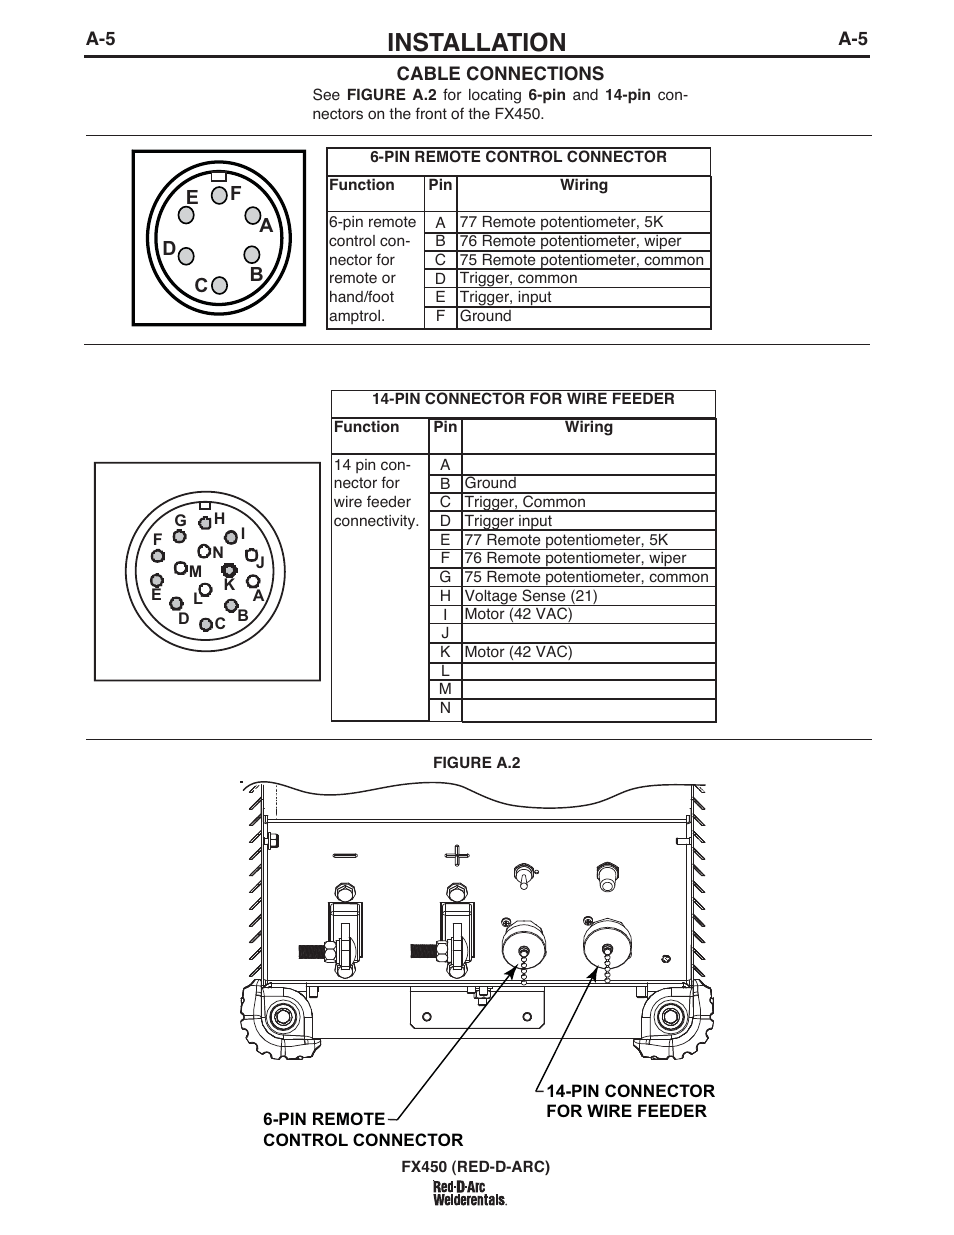 medium resolution of installation lincoln electric im10094 red d arc fx450 user manual page 12 31